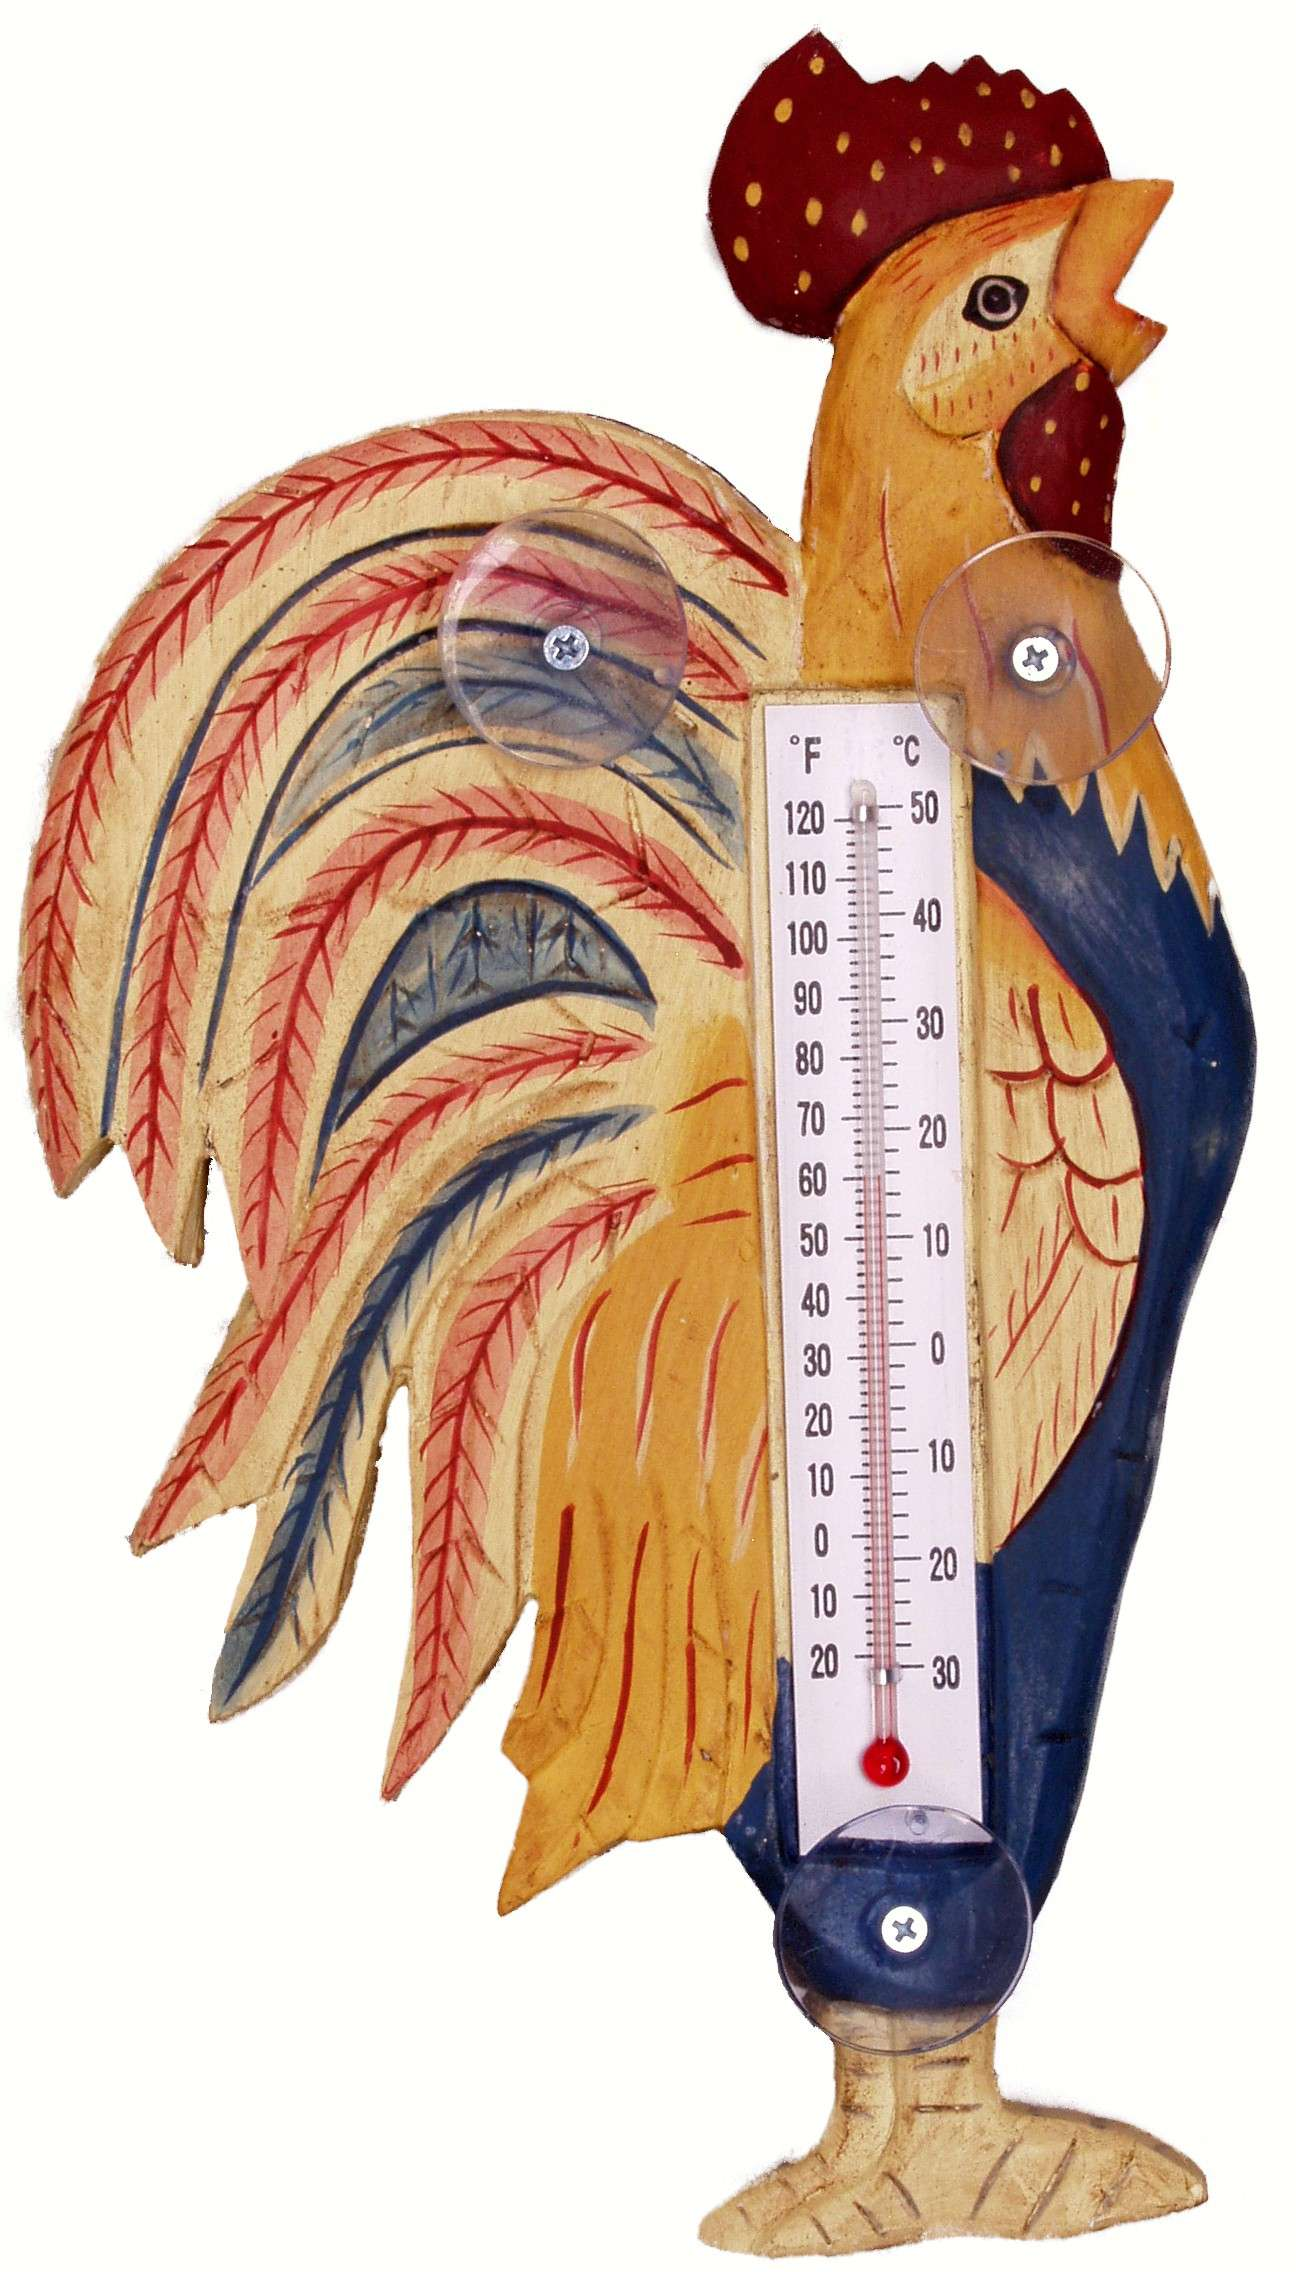 Country Rooster Small Window Thermometer - Quantity 1